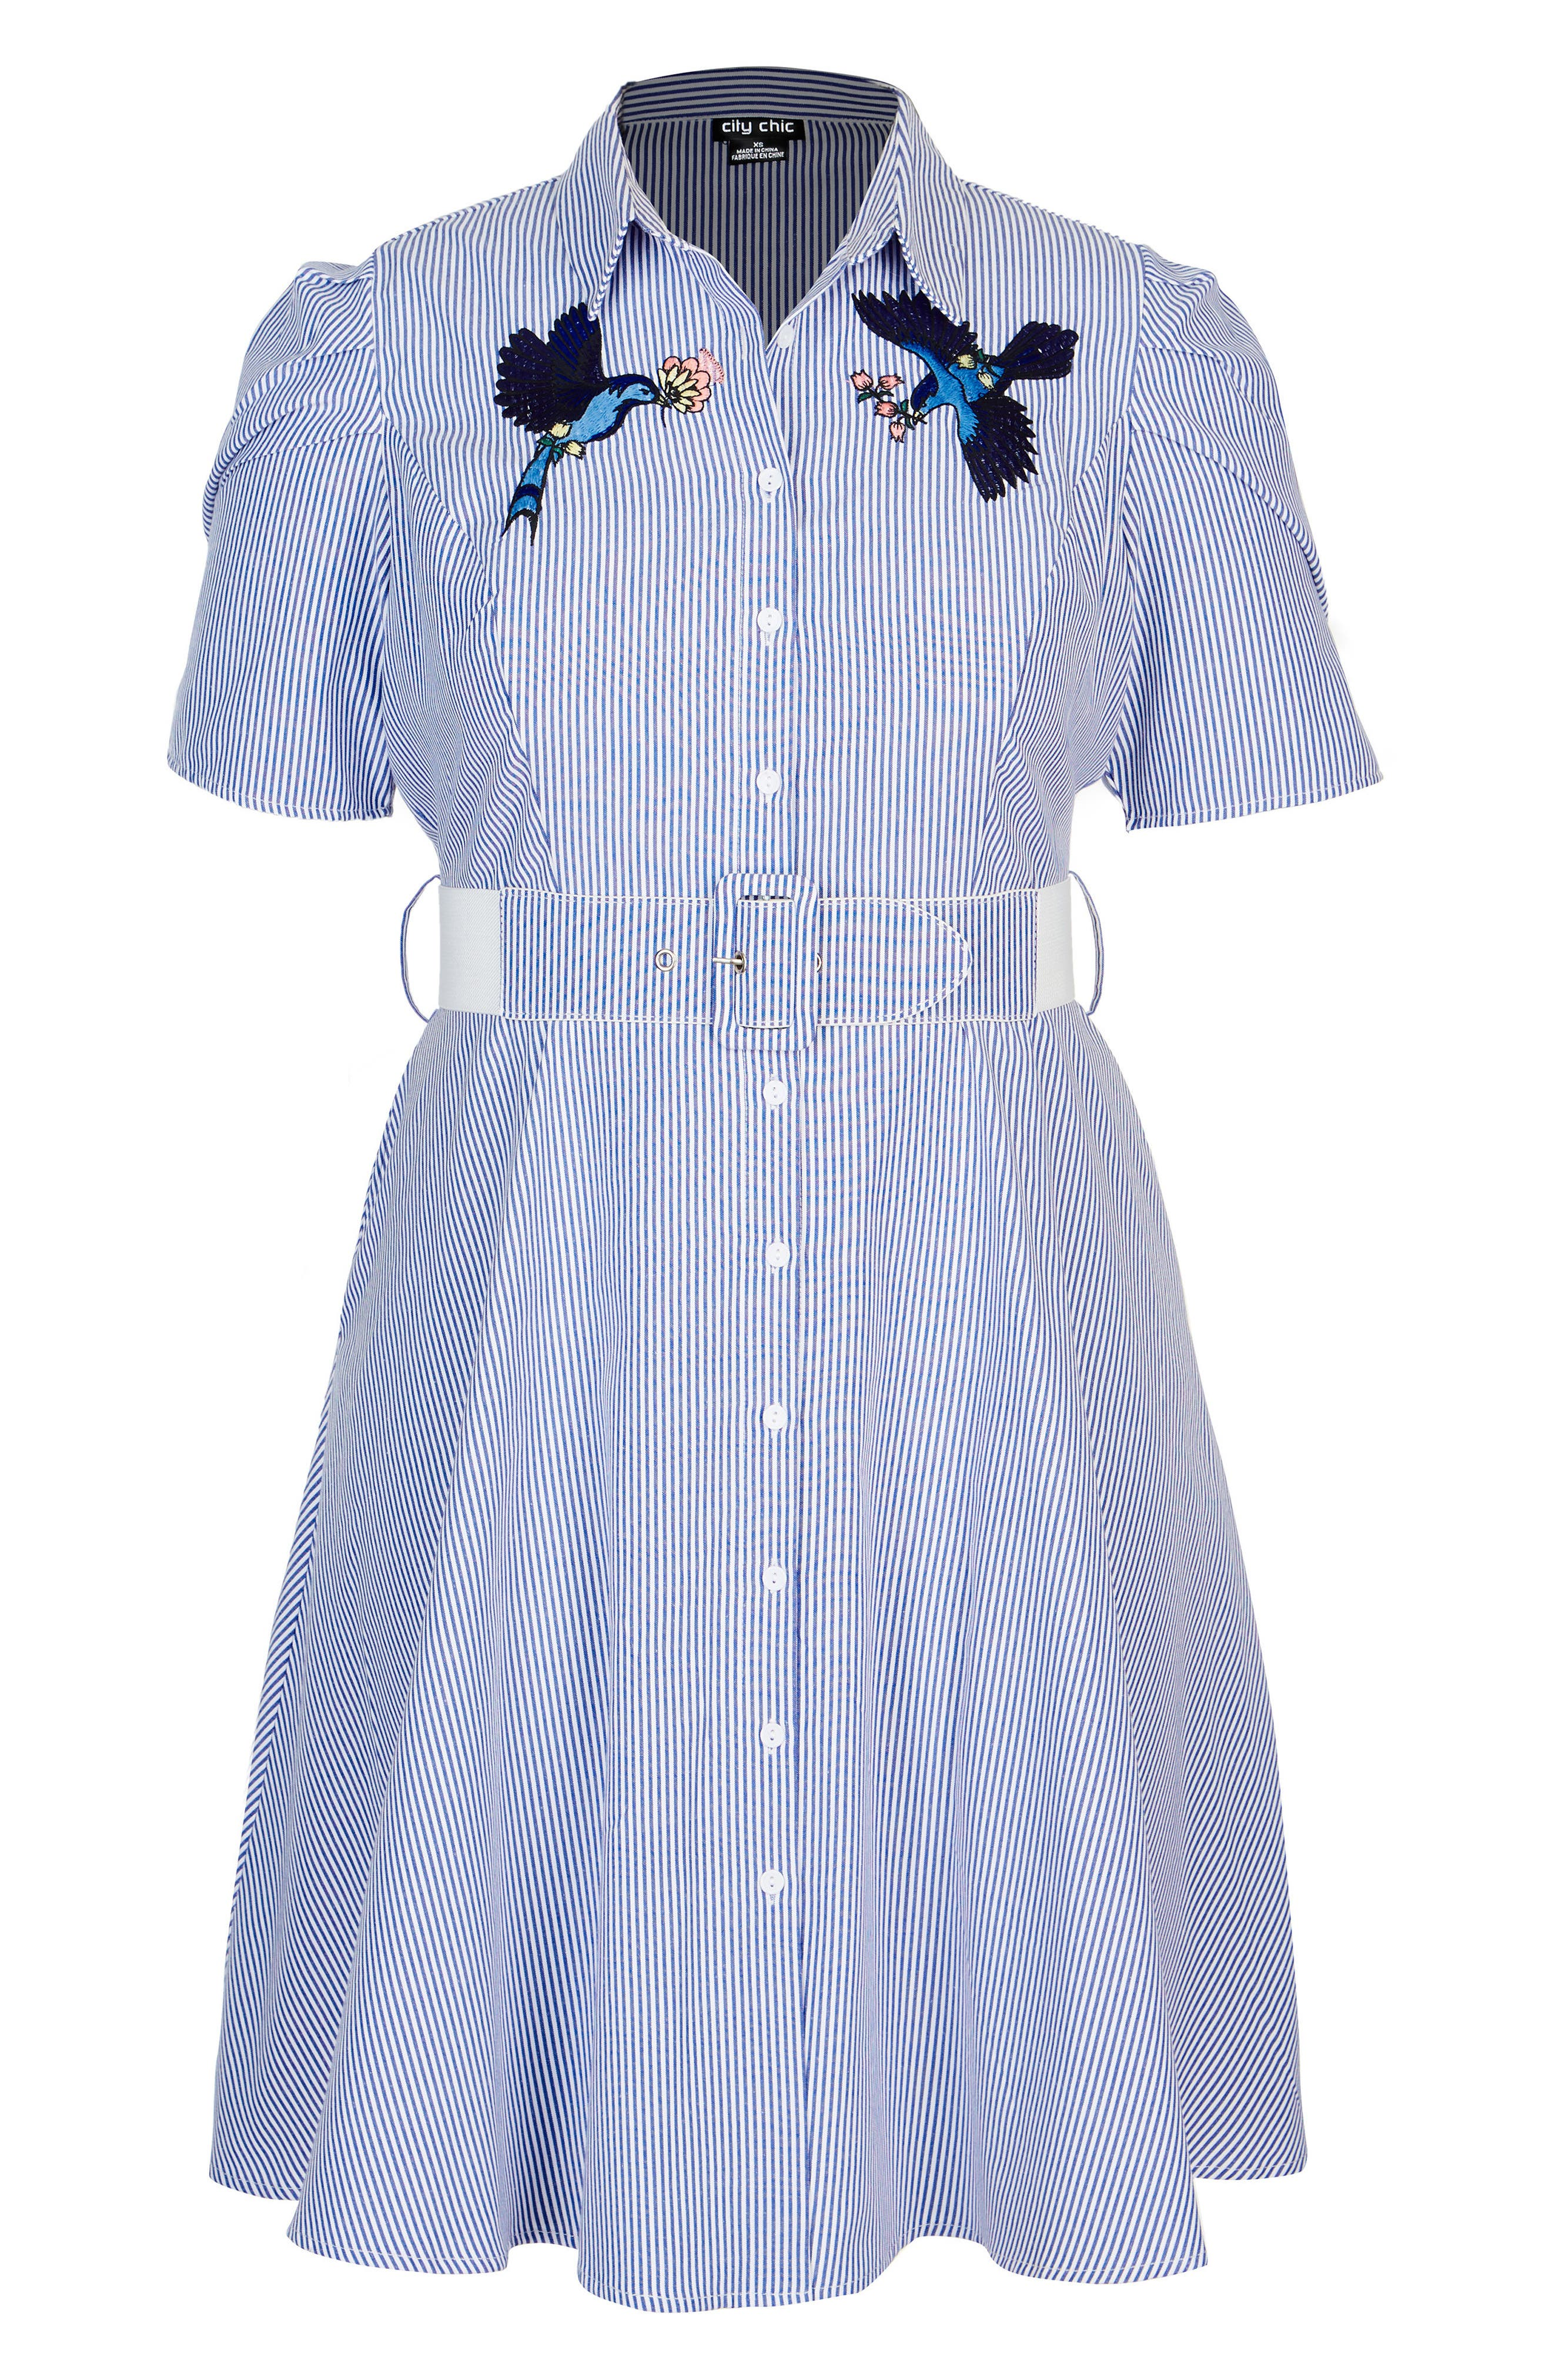 Stripe Essence Shirtdress,                             Alternate thumbnail 3, color,                             Lapis Stripe